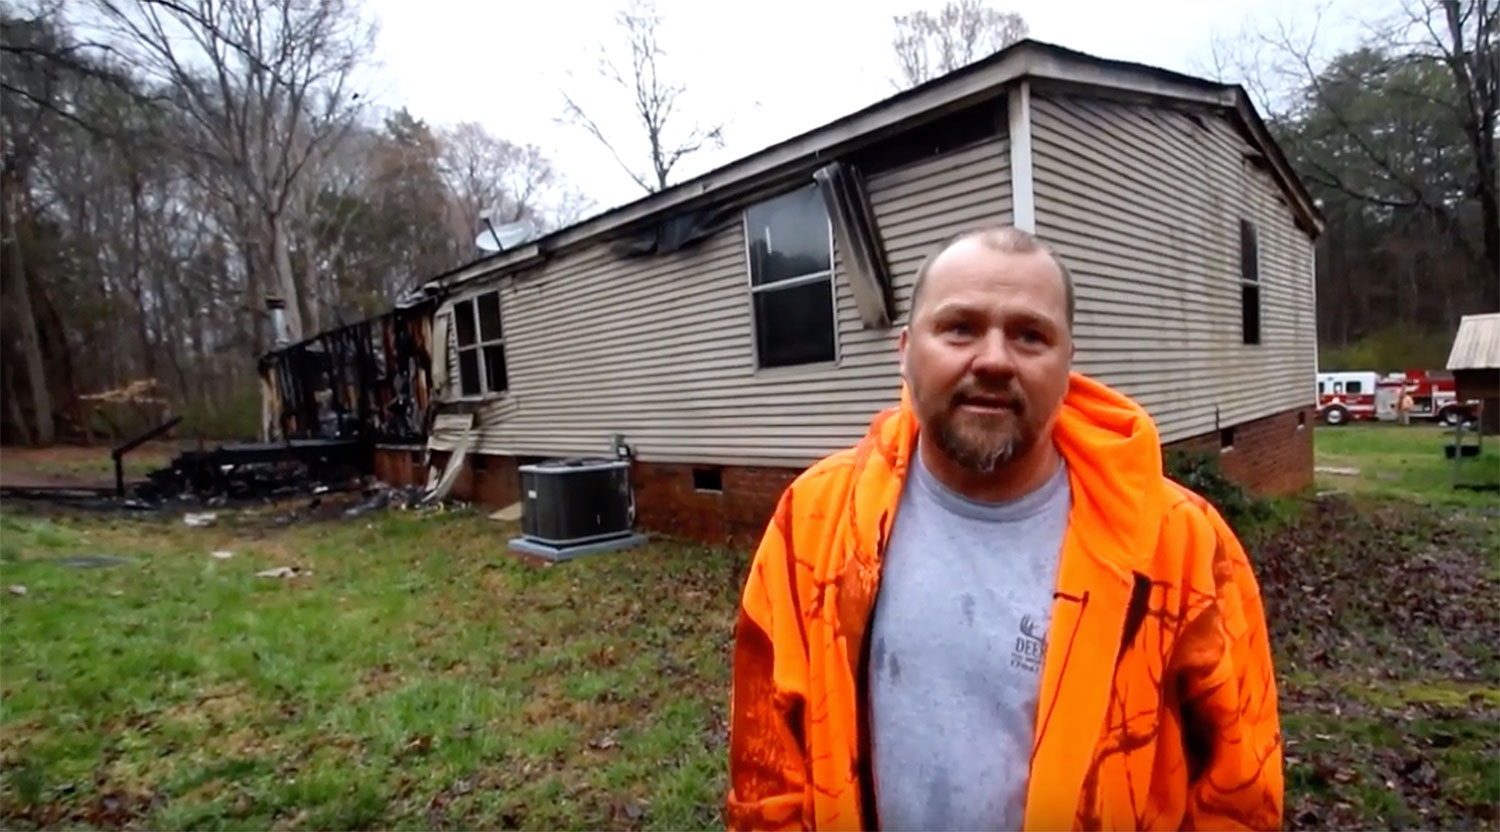 North Carolina Man Saves His Family After Camera Meant to Detect Fox Picks Up House Fire Instead